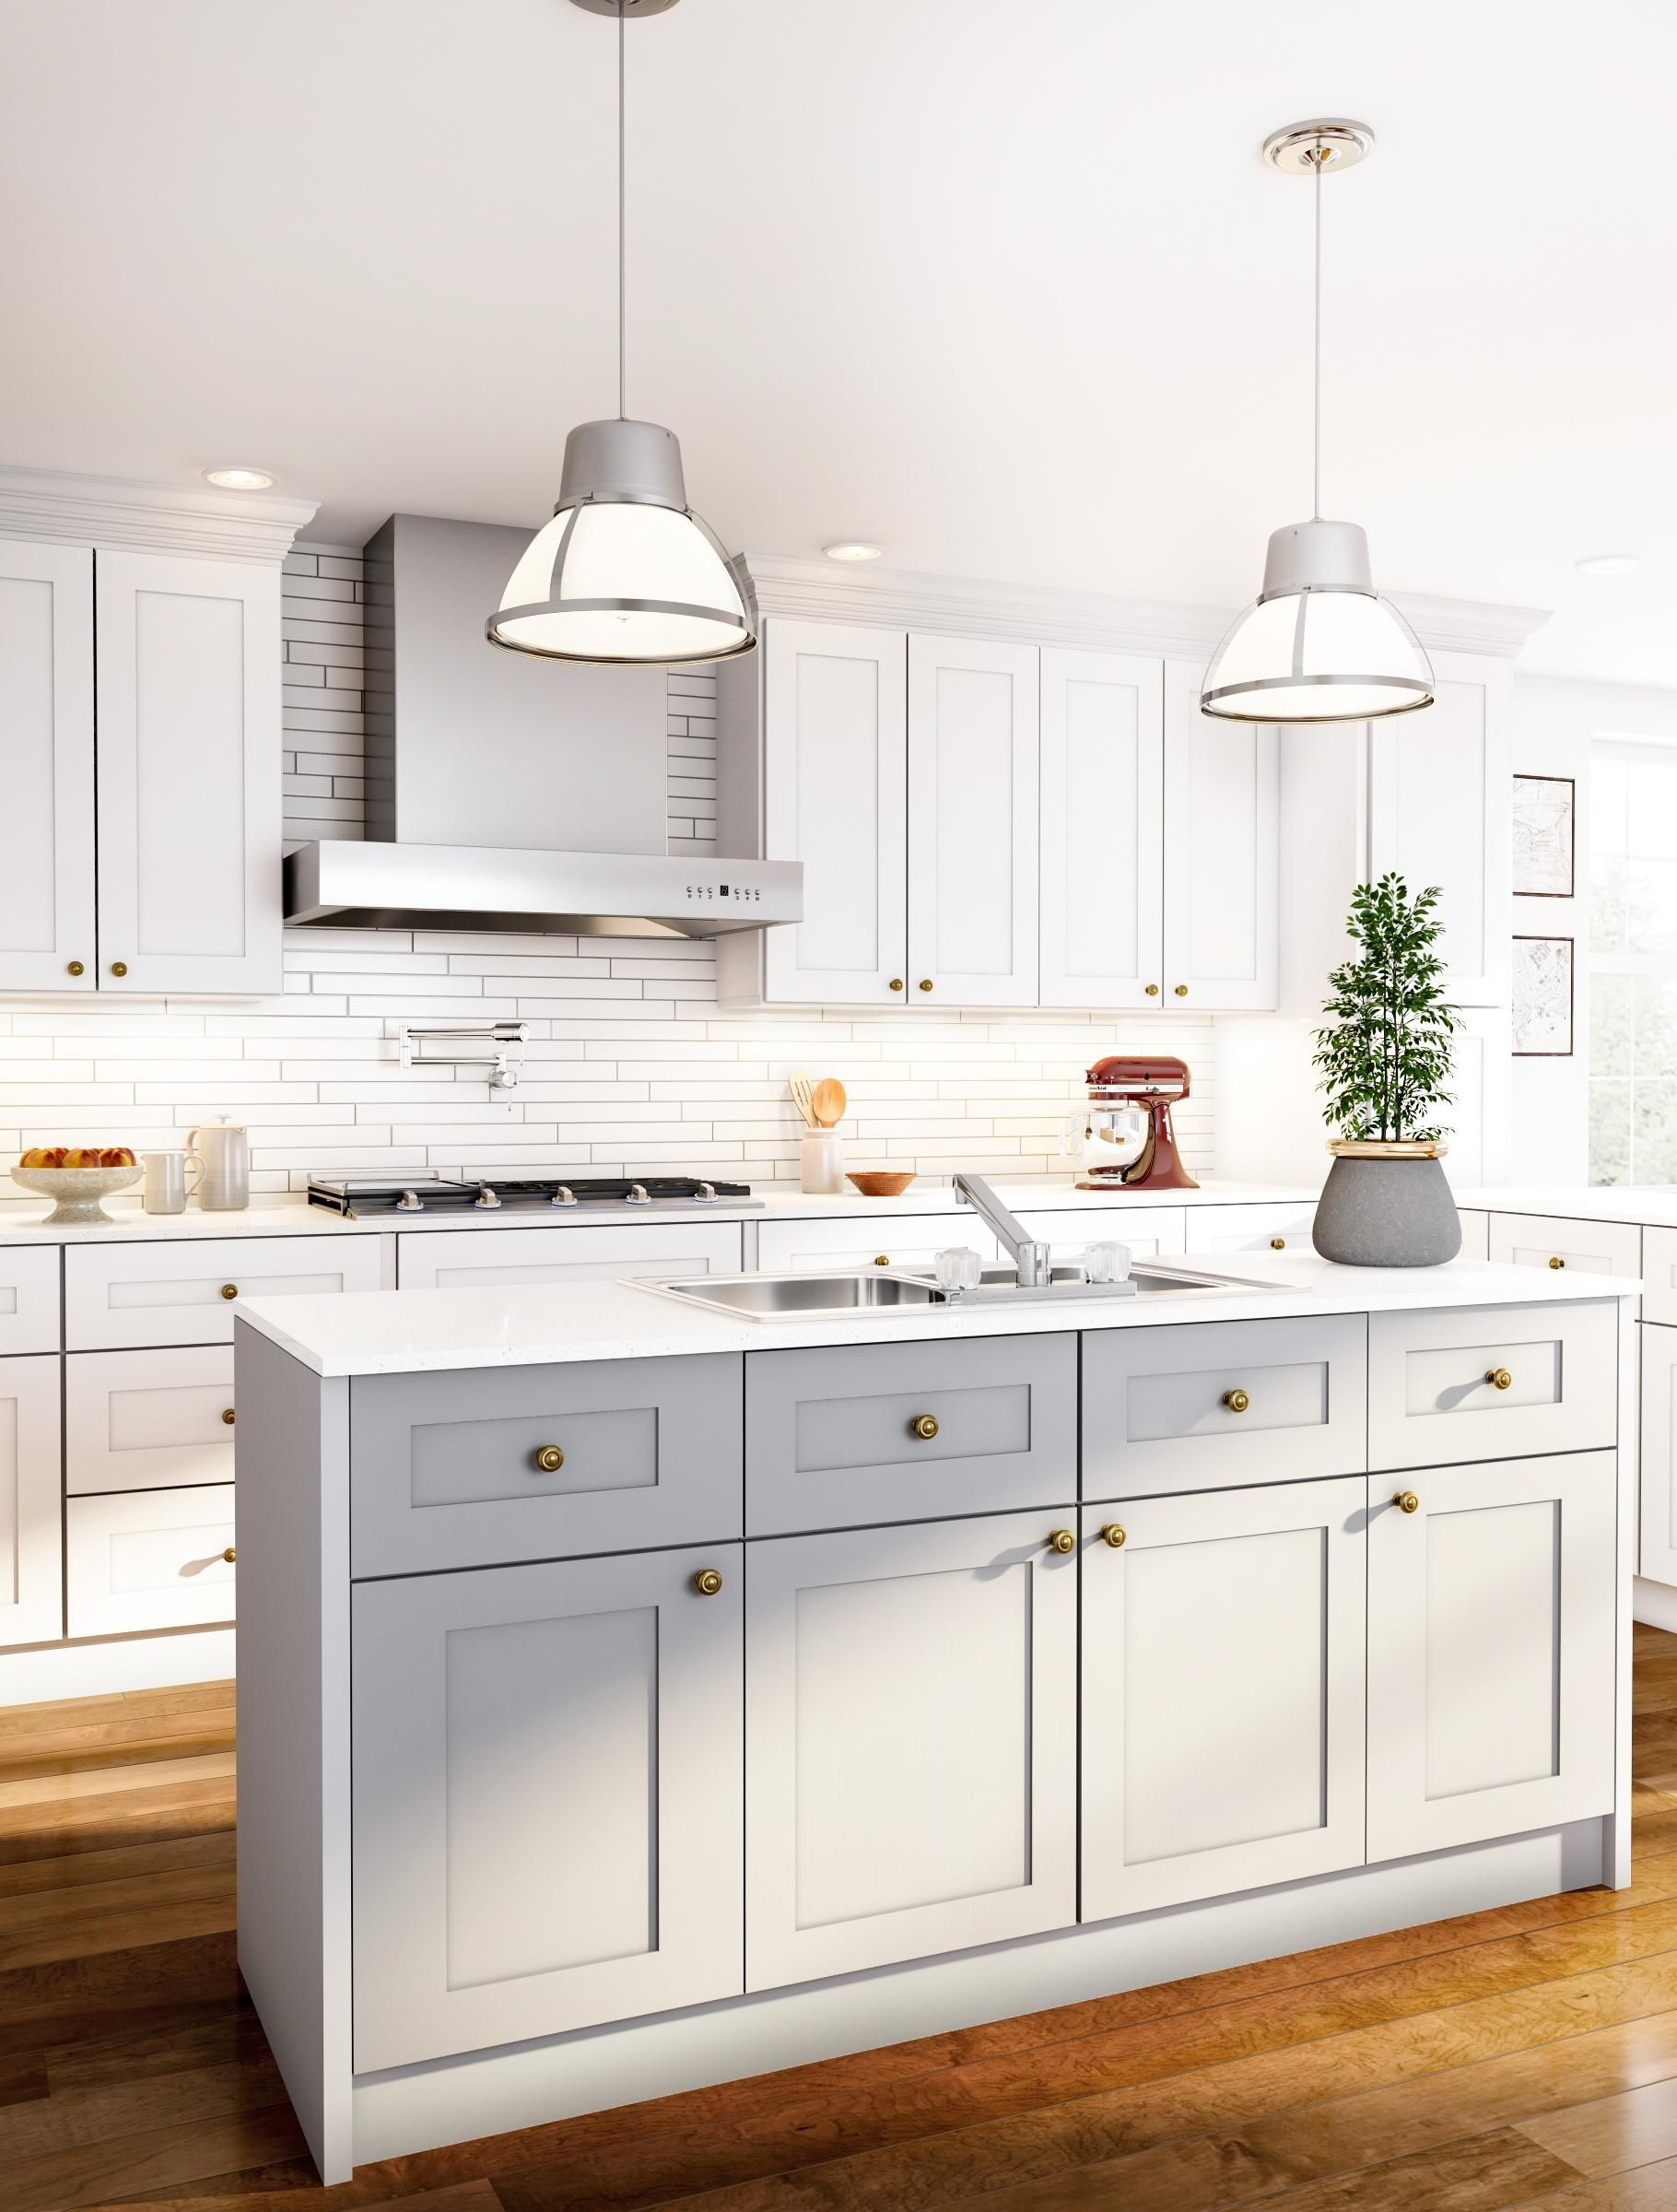 Remodeling Your Kitchen On A Budget Classic White Kitchen White Kitchen Design Kitchen Remodel